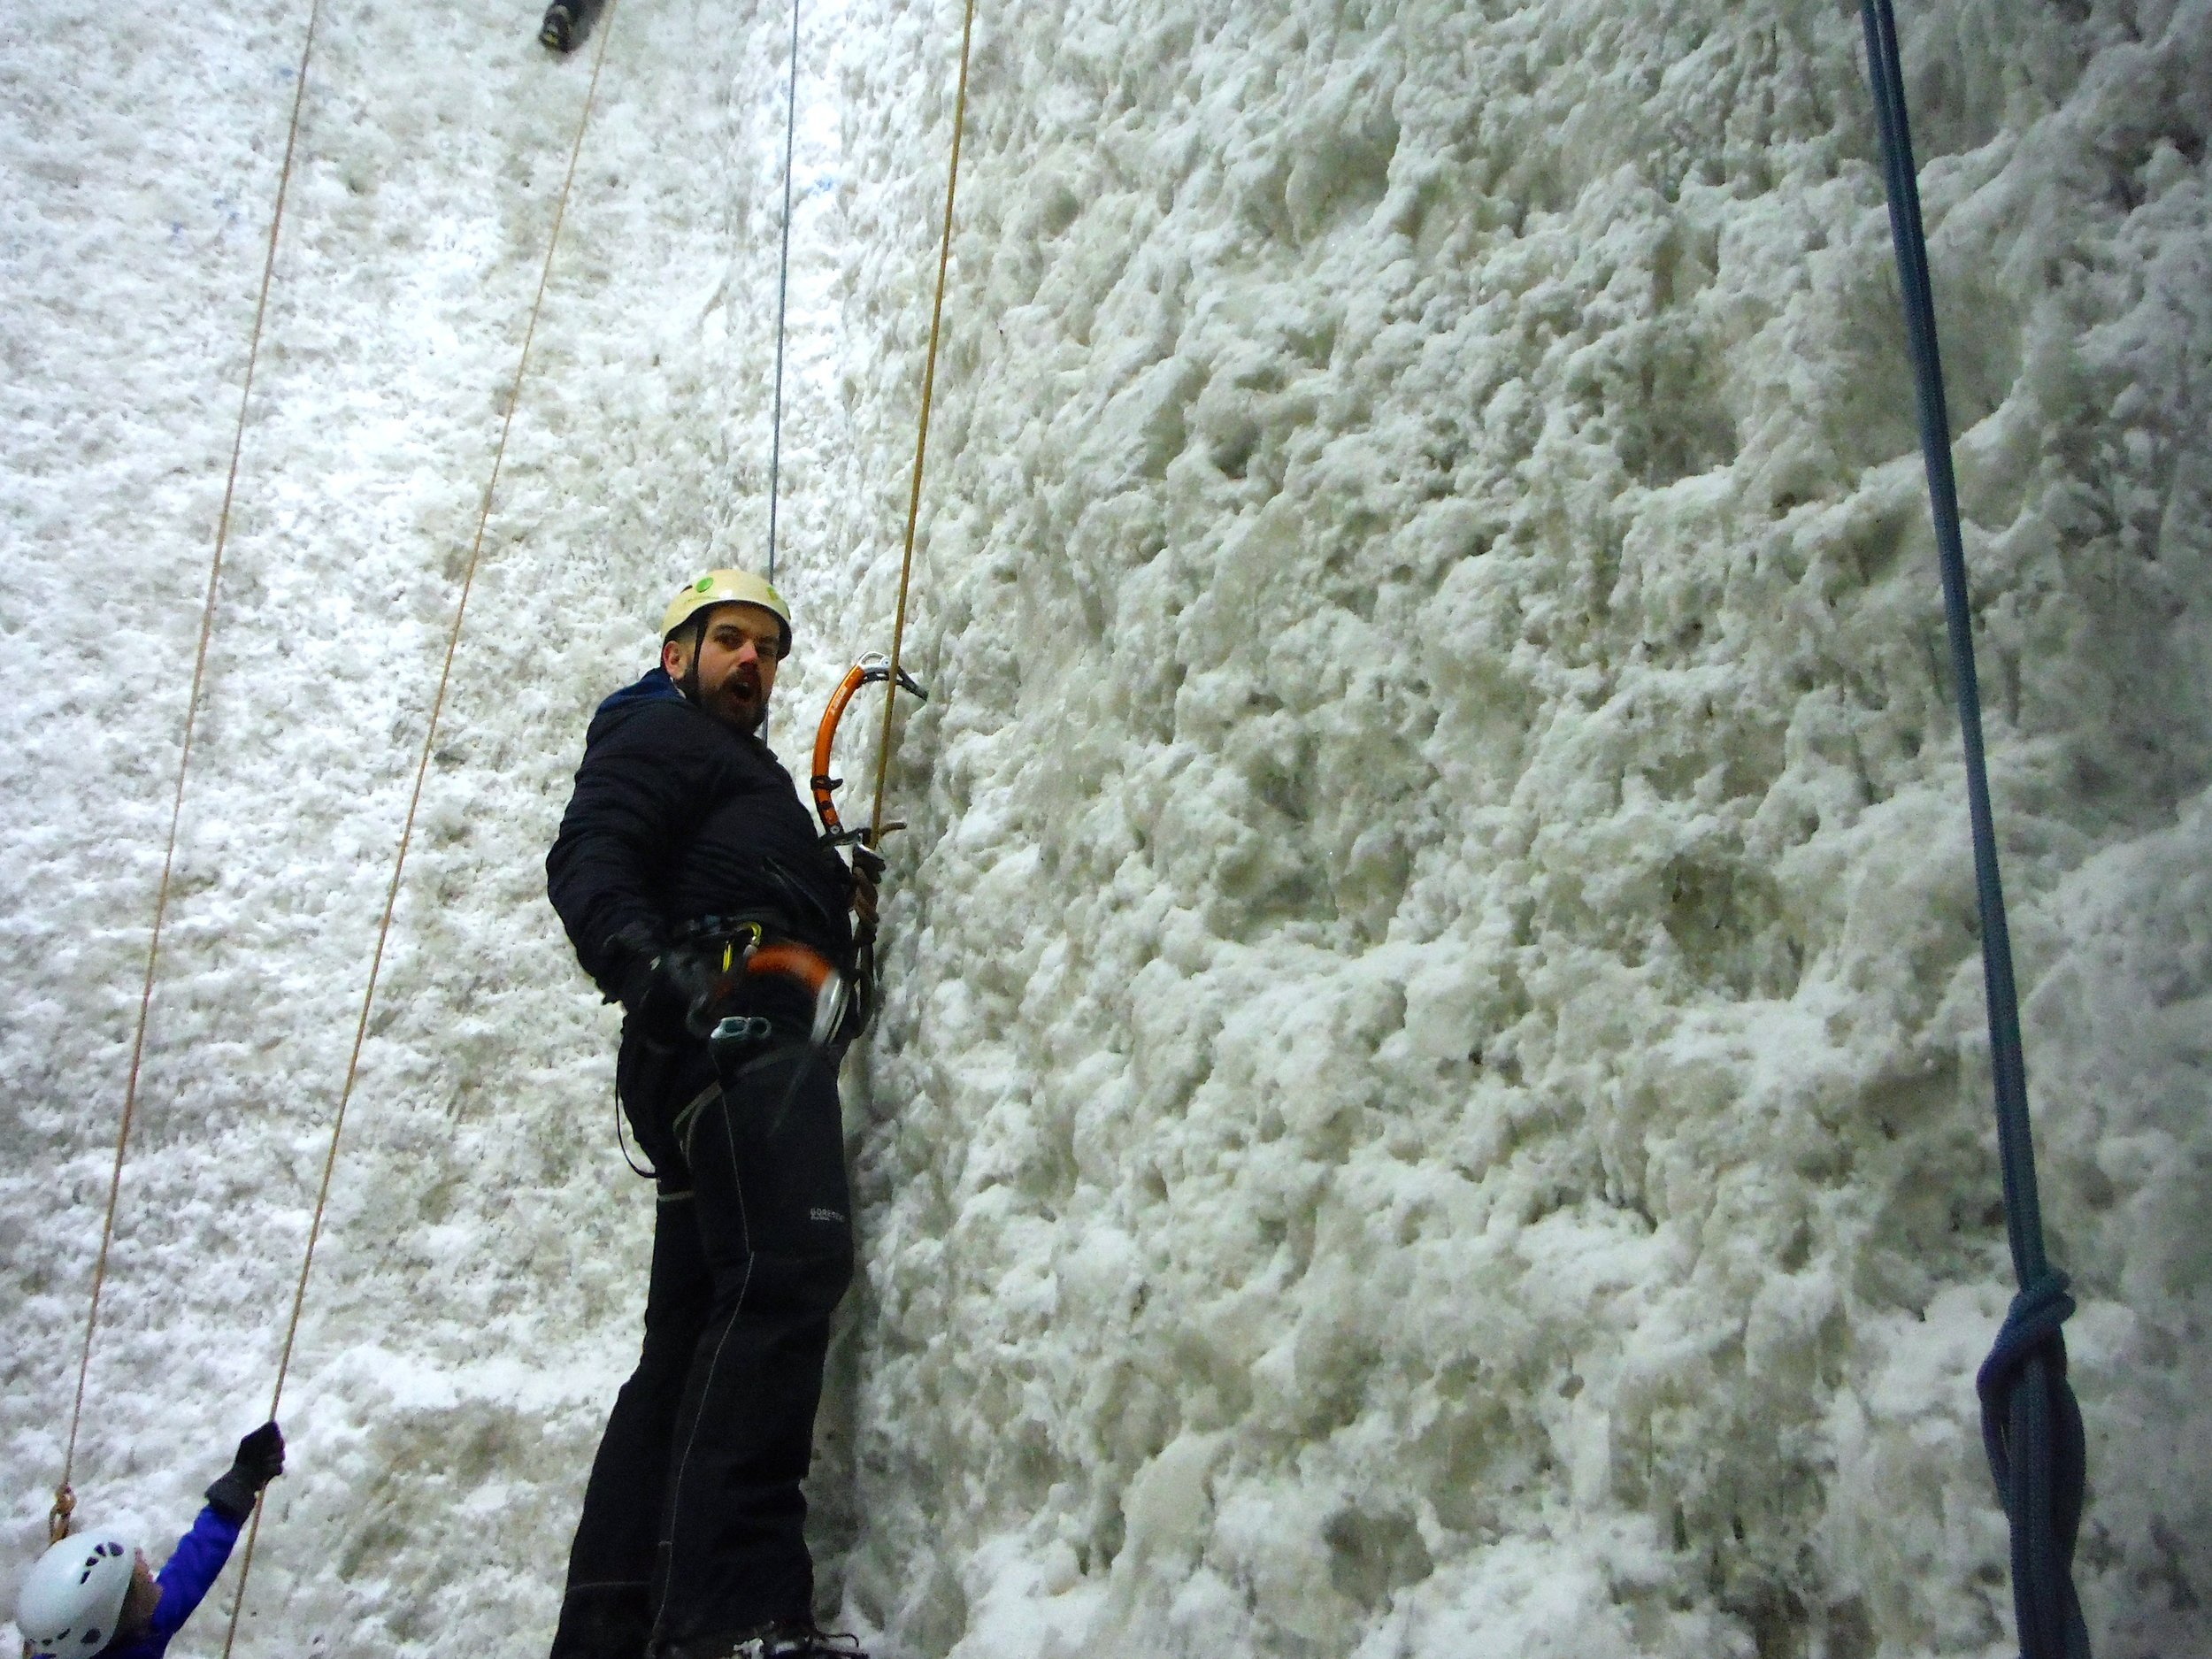 Chris getting used to his Petzl Quark ice axes